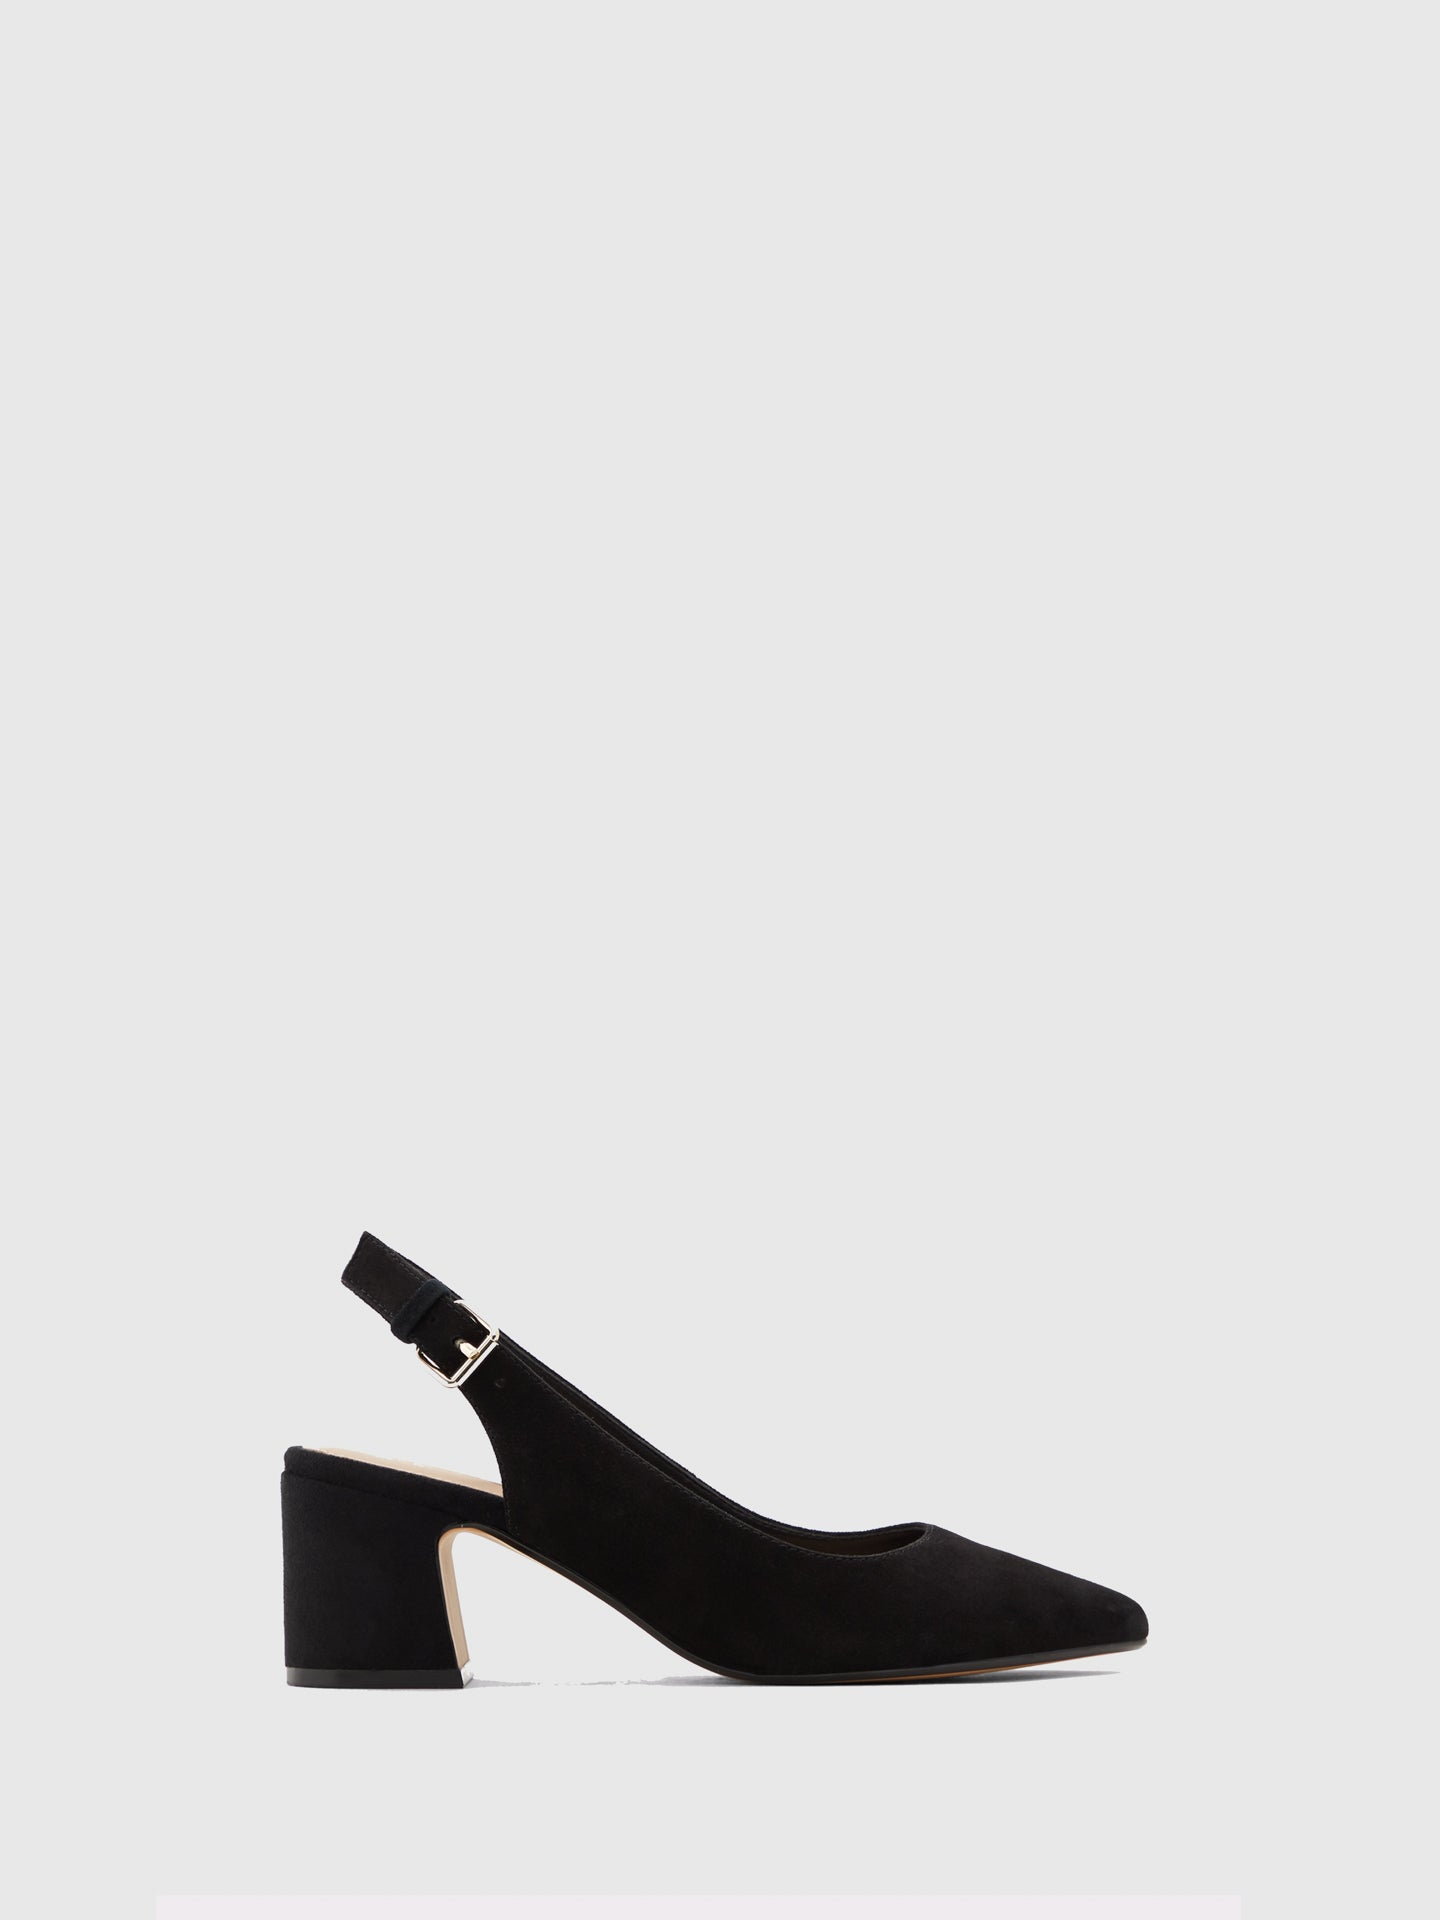 Aldo Black Suede Pointed Toe Shoes